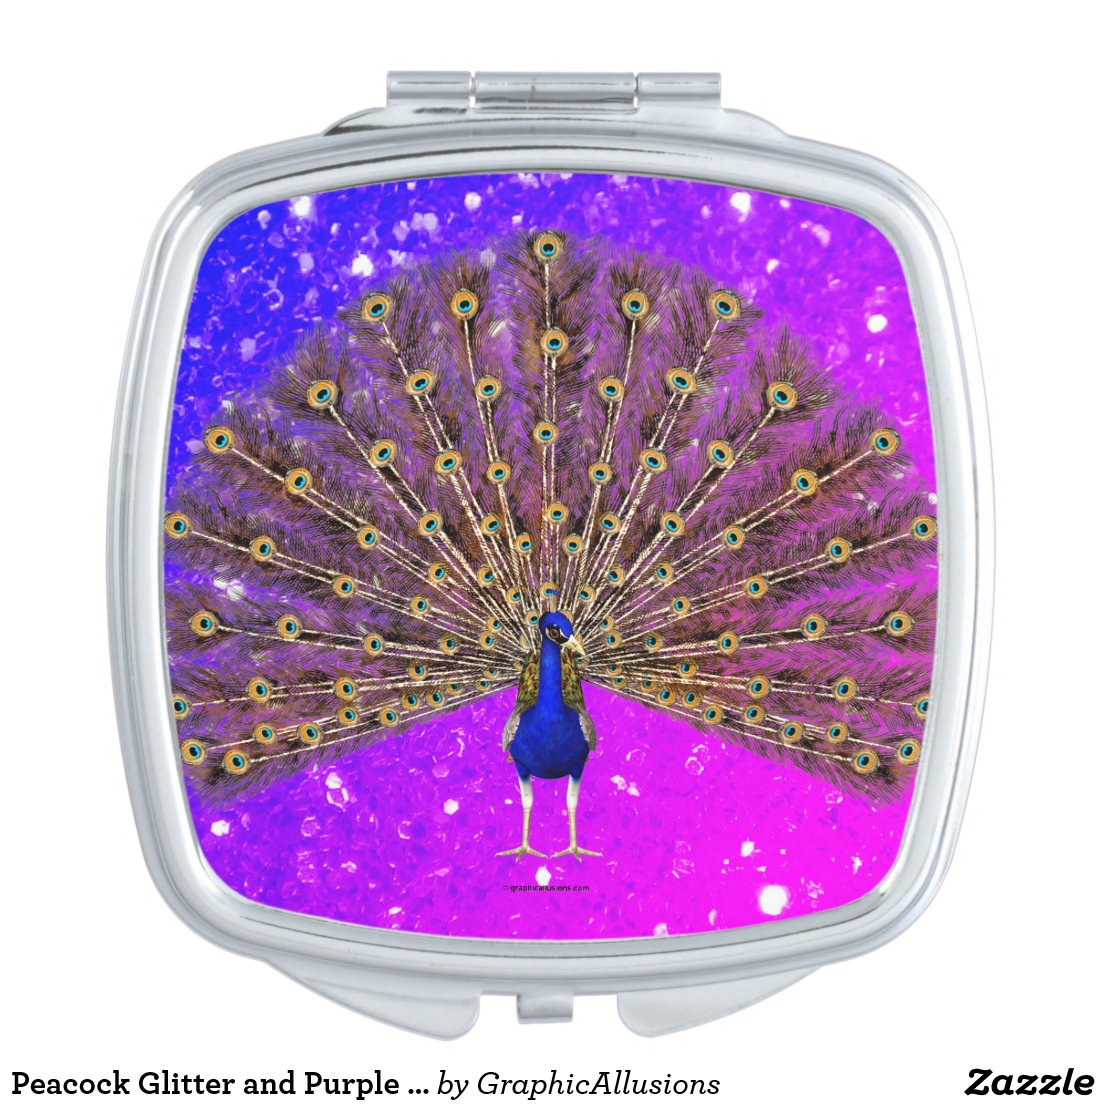 Peacock Glitter and Purple Sparkles Compact Mirror